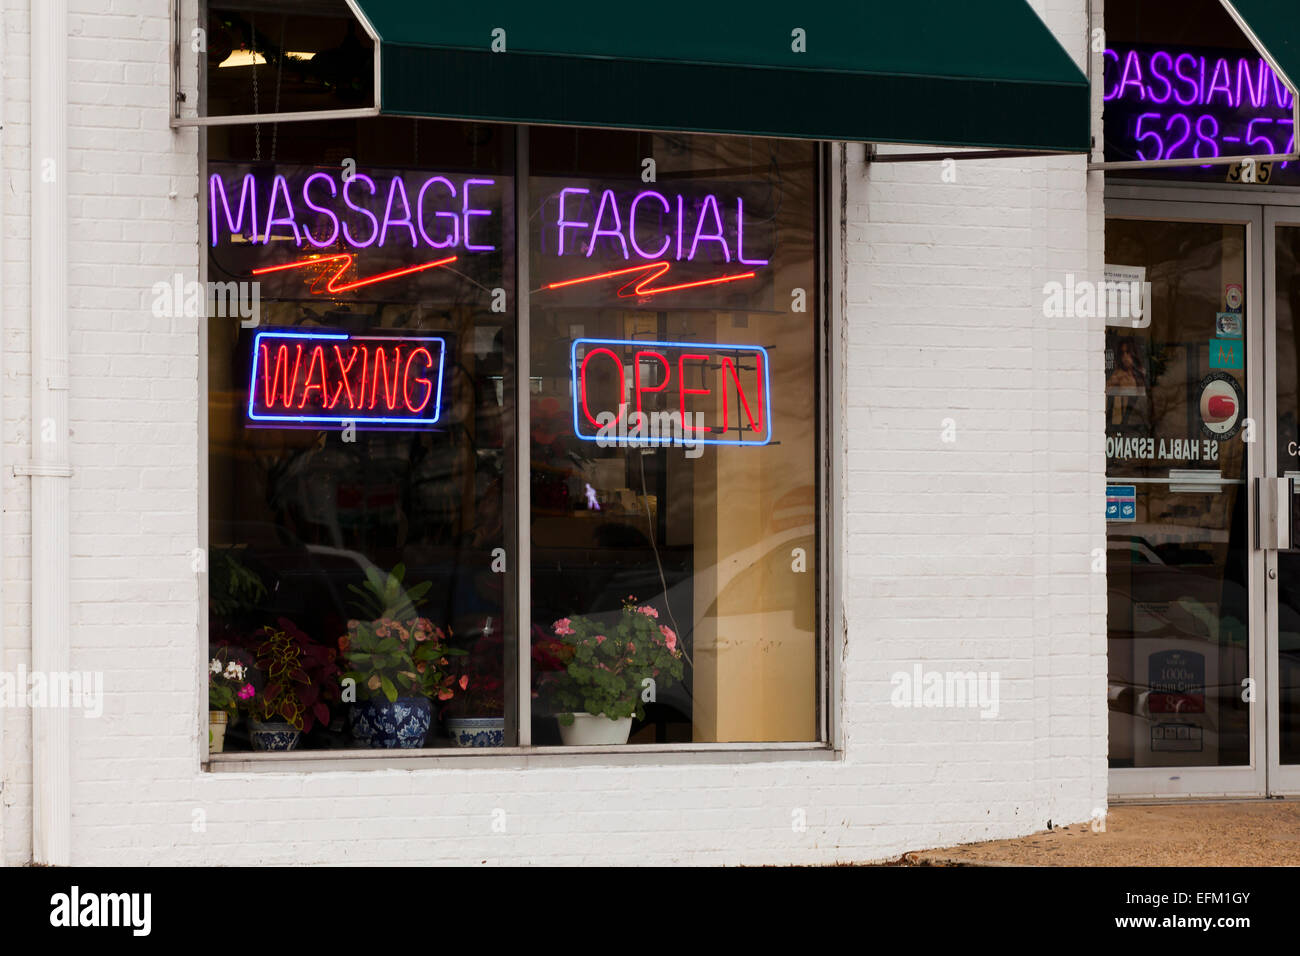 Asian massage in usa with